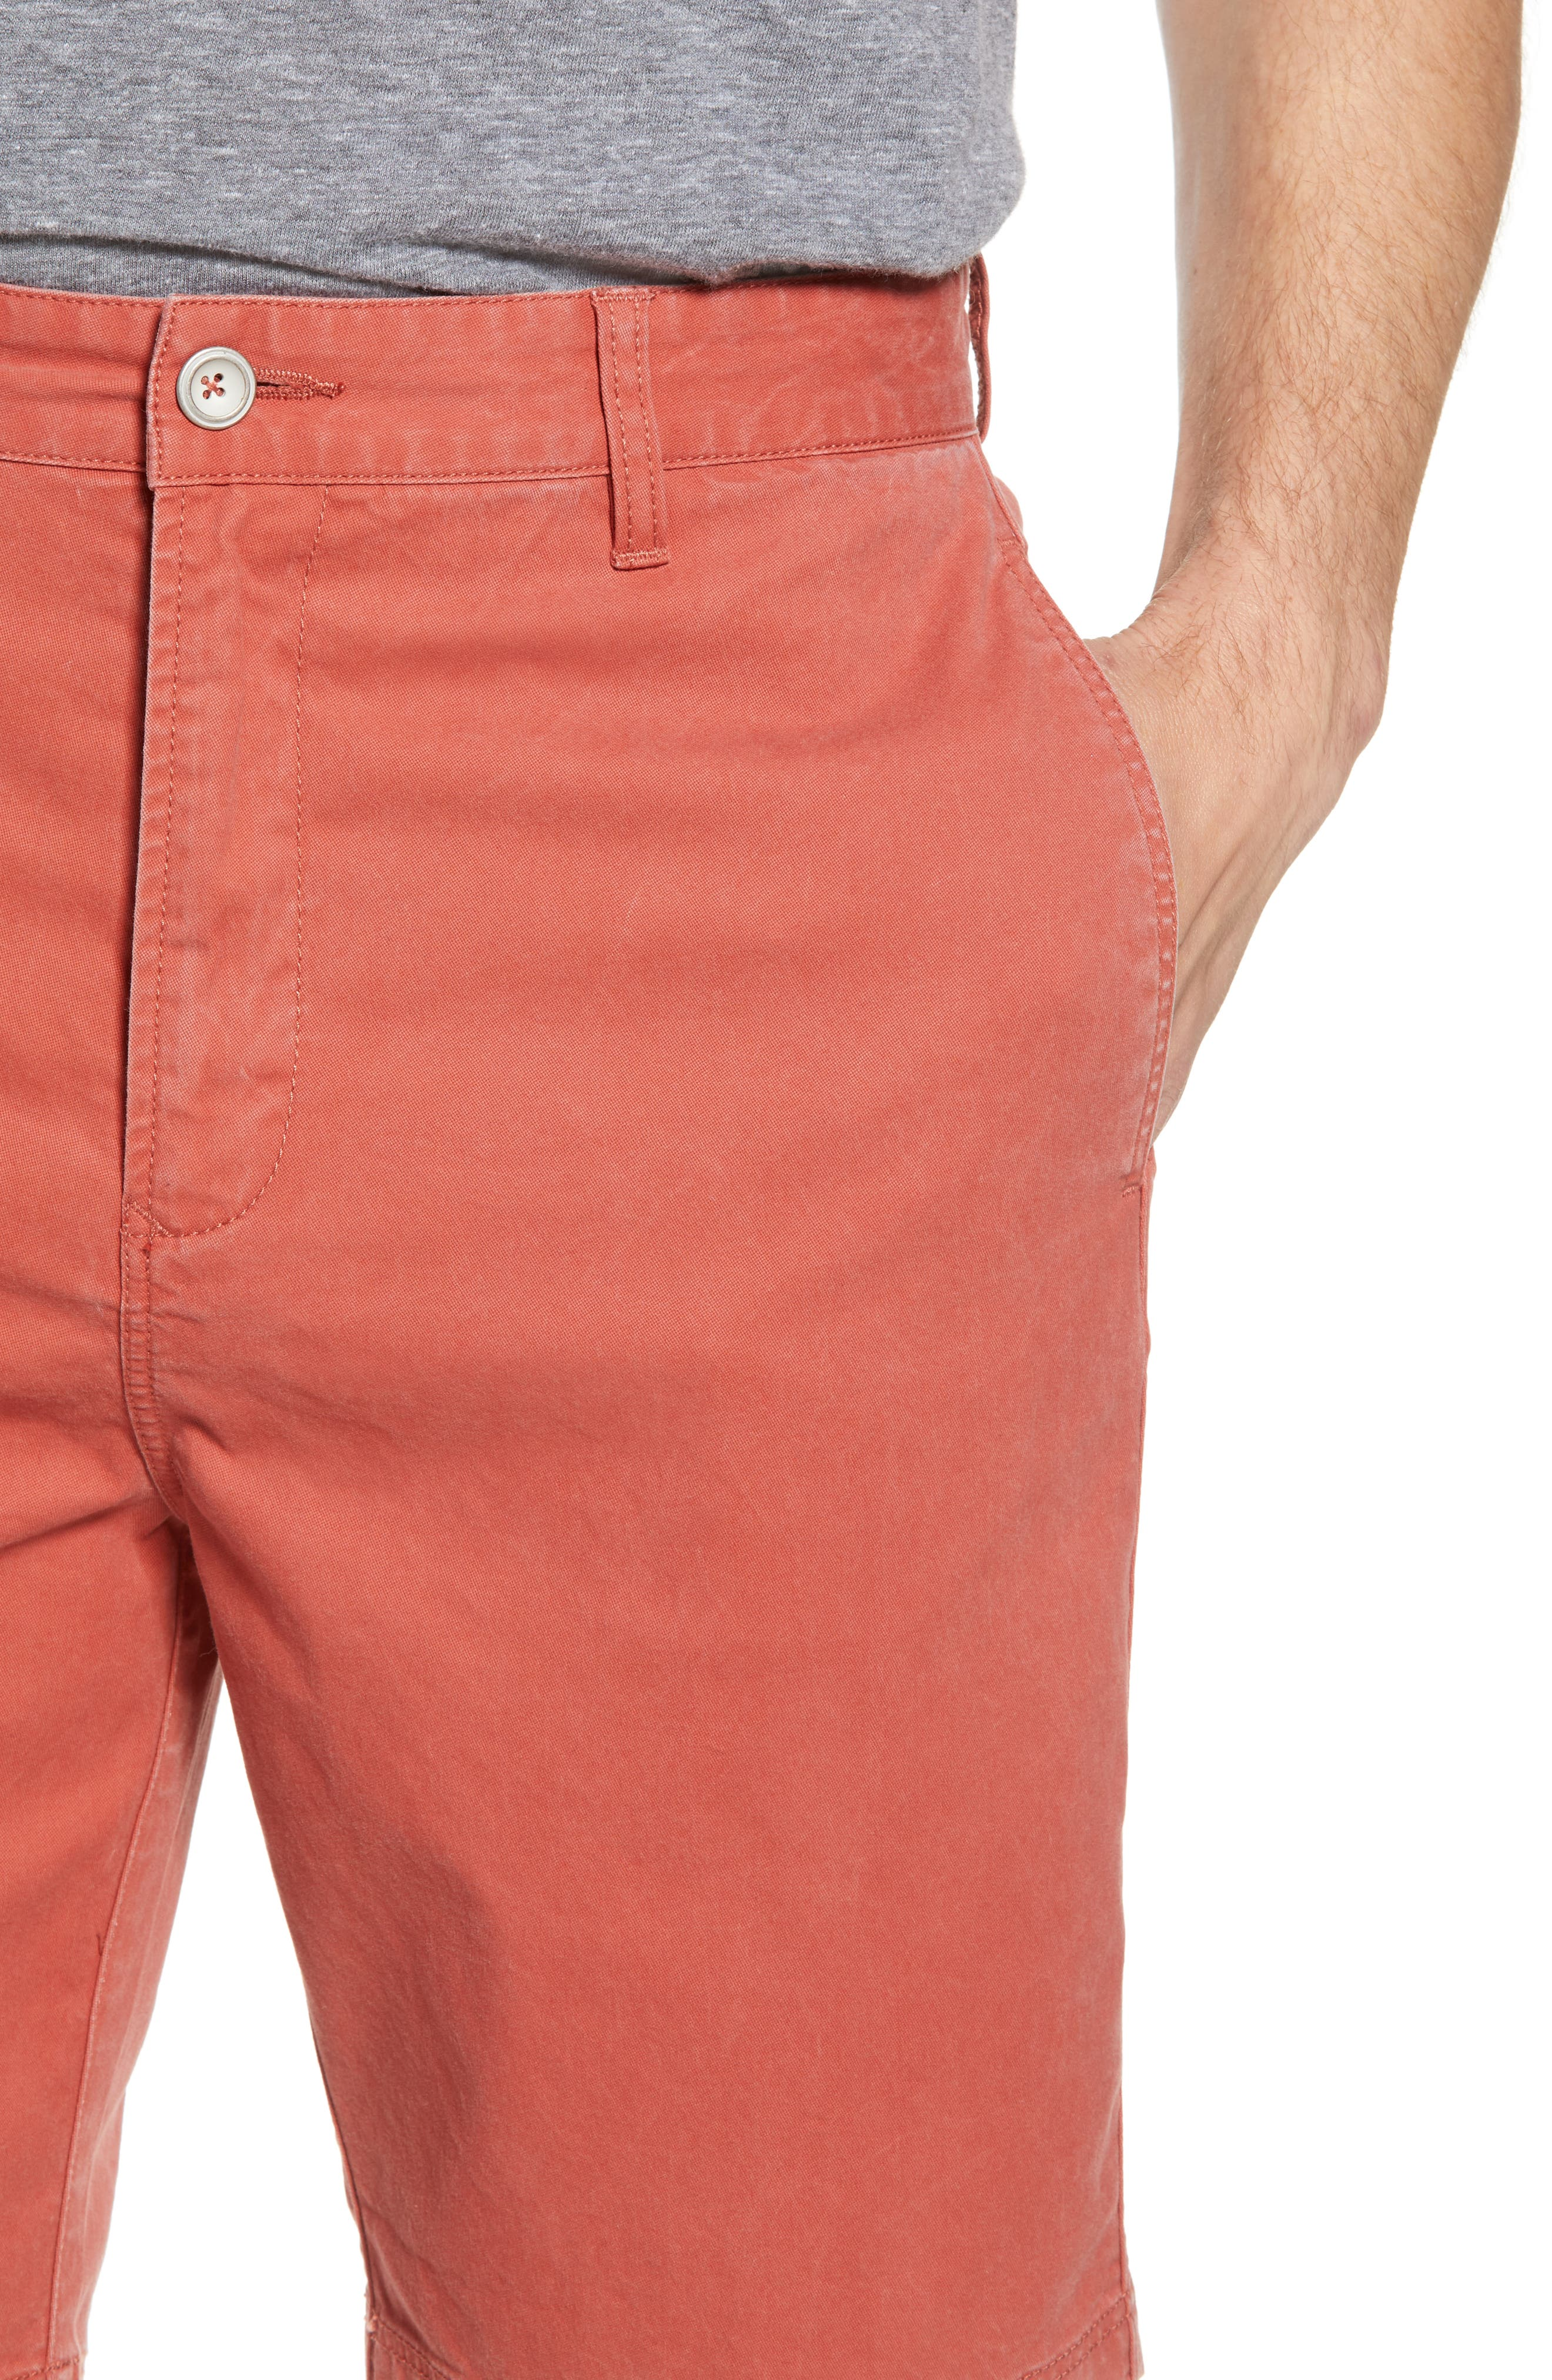 Glenburn Shorts,                             Alternate thumbnail 5, color,                             Red Ochre